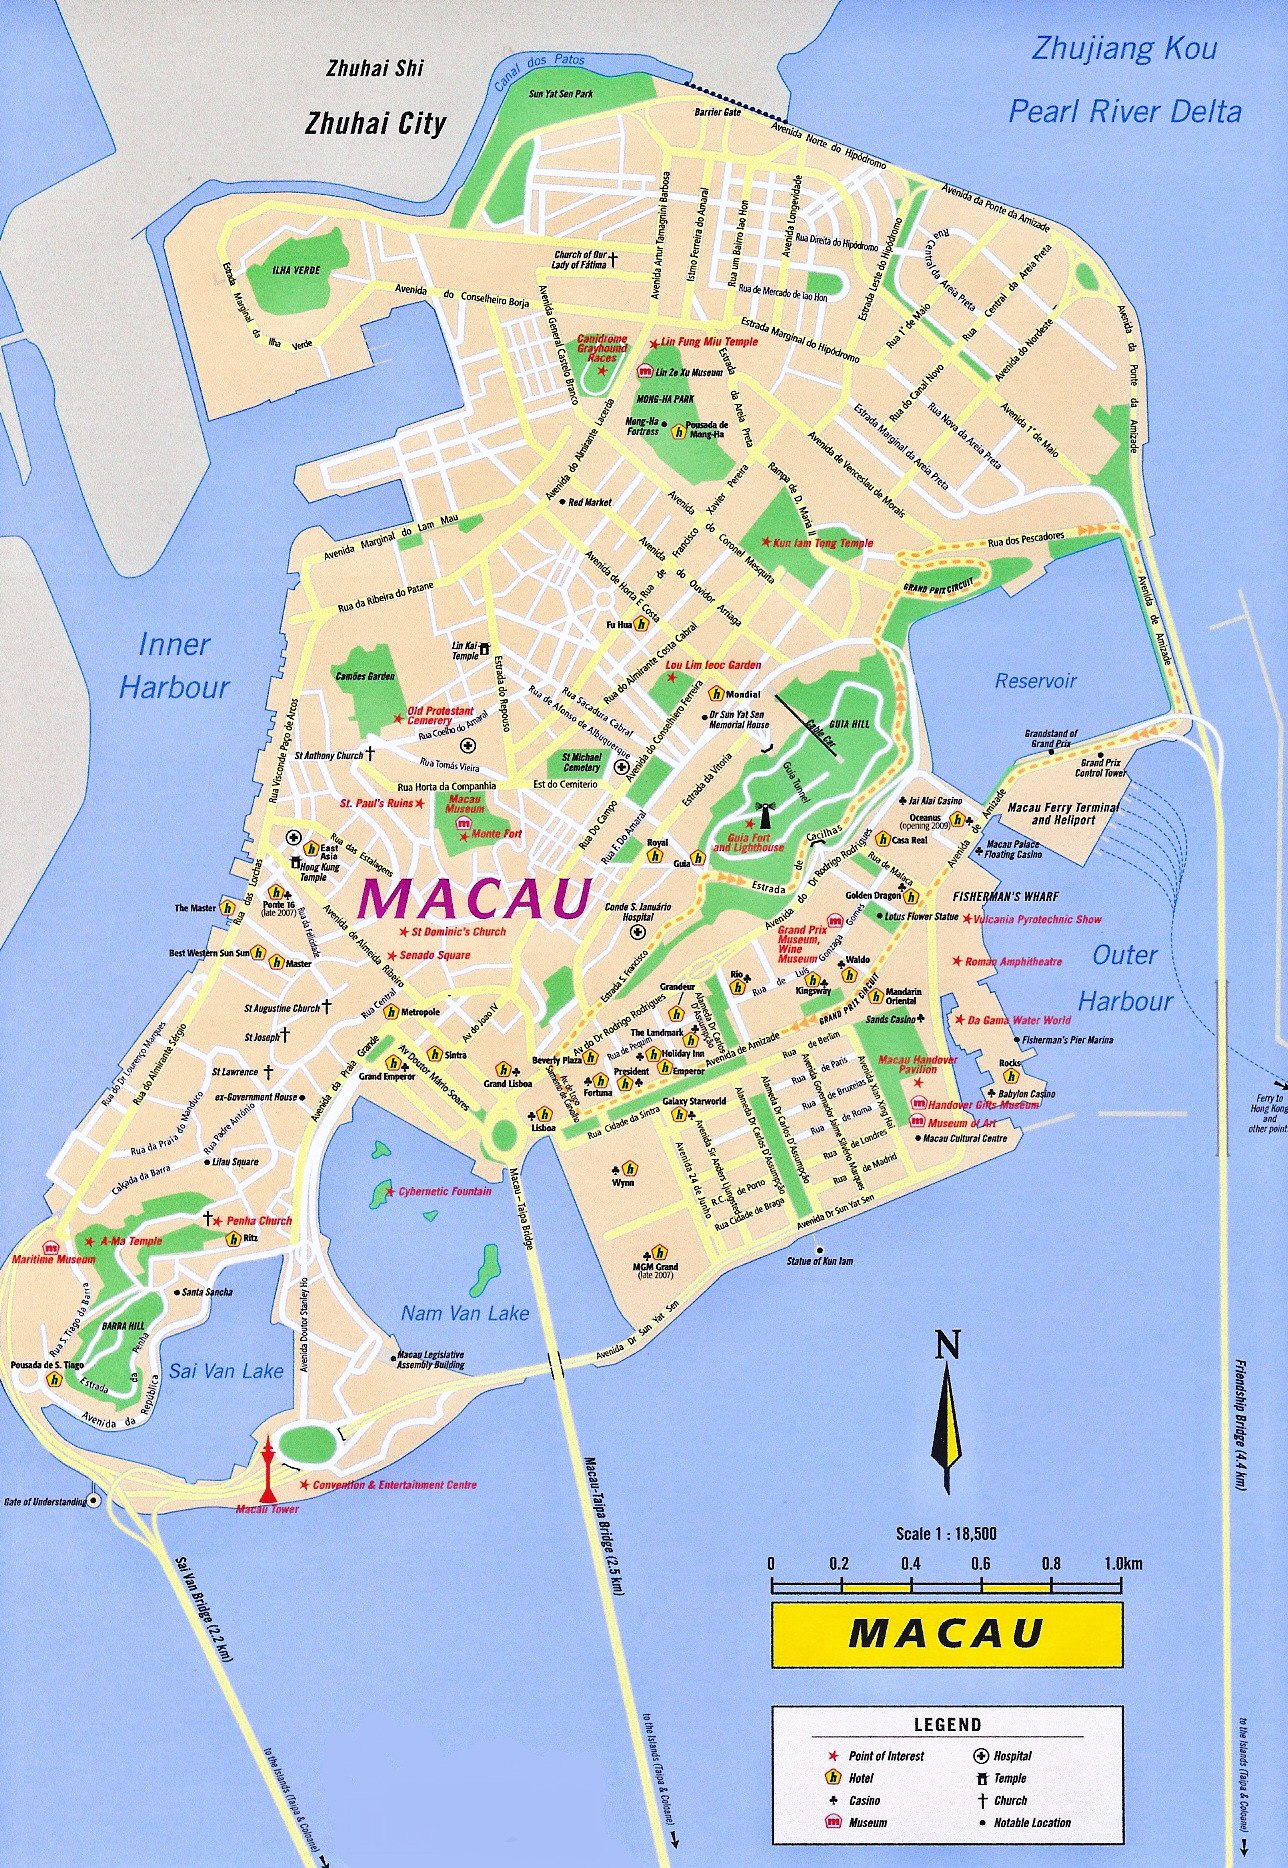 Macau maps | China Mike on san marino map, hong kong map, mongolia map, shanghai map, lijiang map, irrawaddy river map, indonesia map, dalian map, cotai map, chengdu map, wuhan map, macedonia map, asia map, china map, taipei map, beijing map, zhuhai map, kunming map, yangtze river map, suzhou map, guangzhou map, xiamen map, macau attractions, malta map, brunei map, shenzhen map, tianjin map, macau hotels, taipa map, niue map, huangshan map, vietnam map, nanjing map,